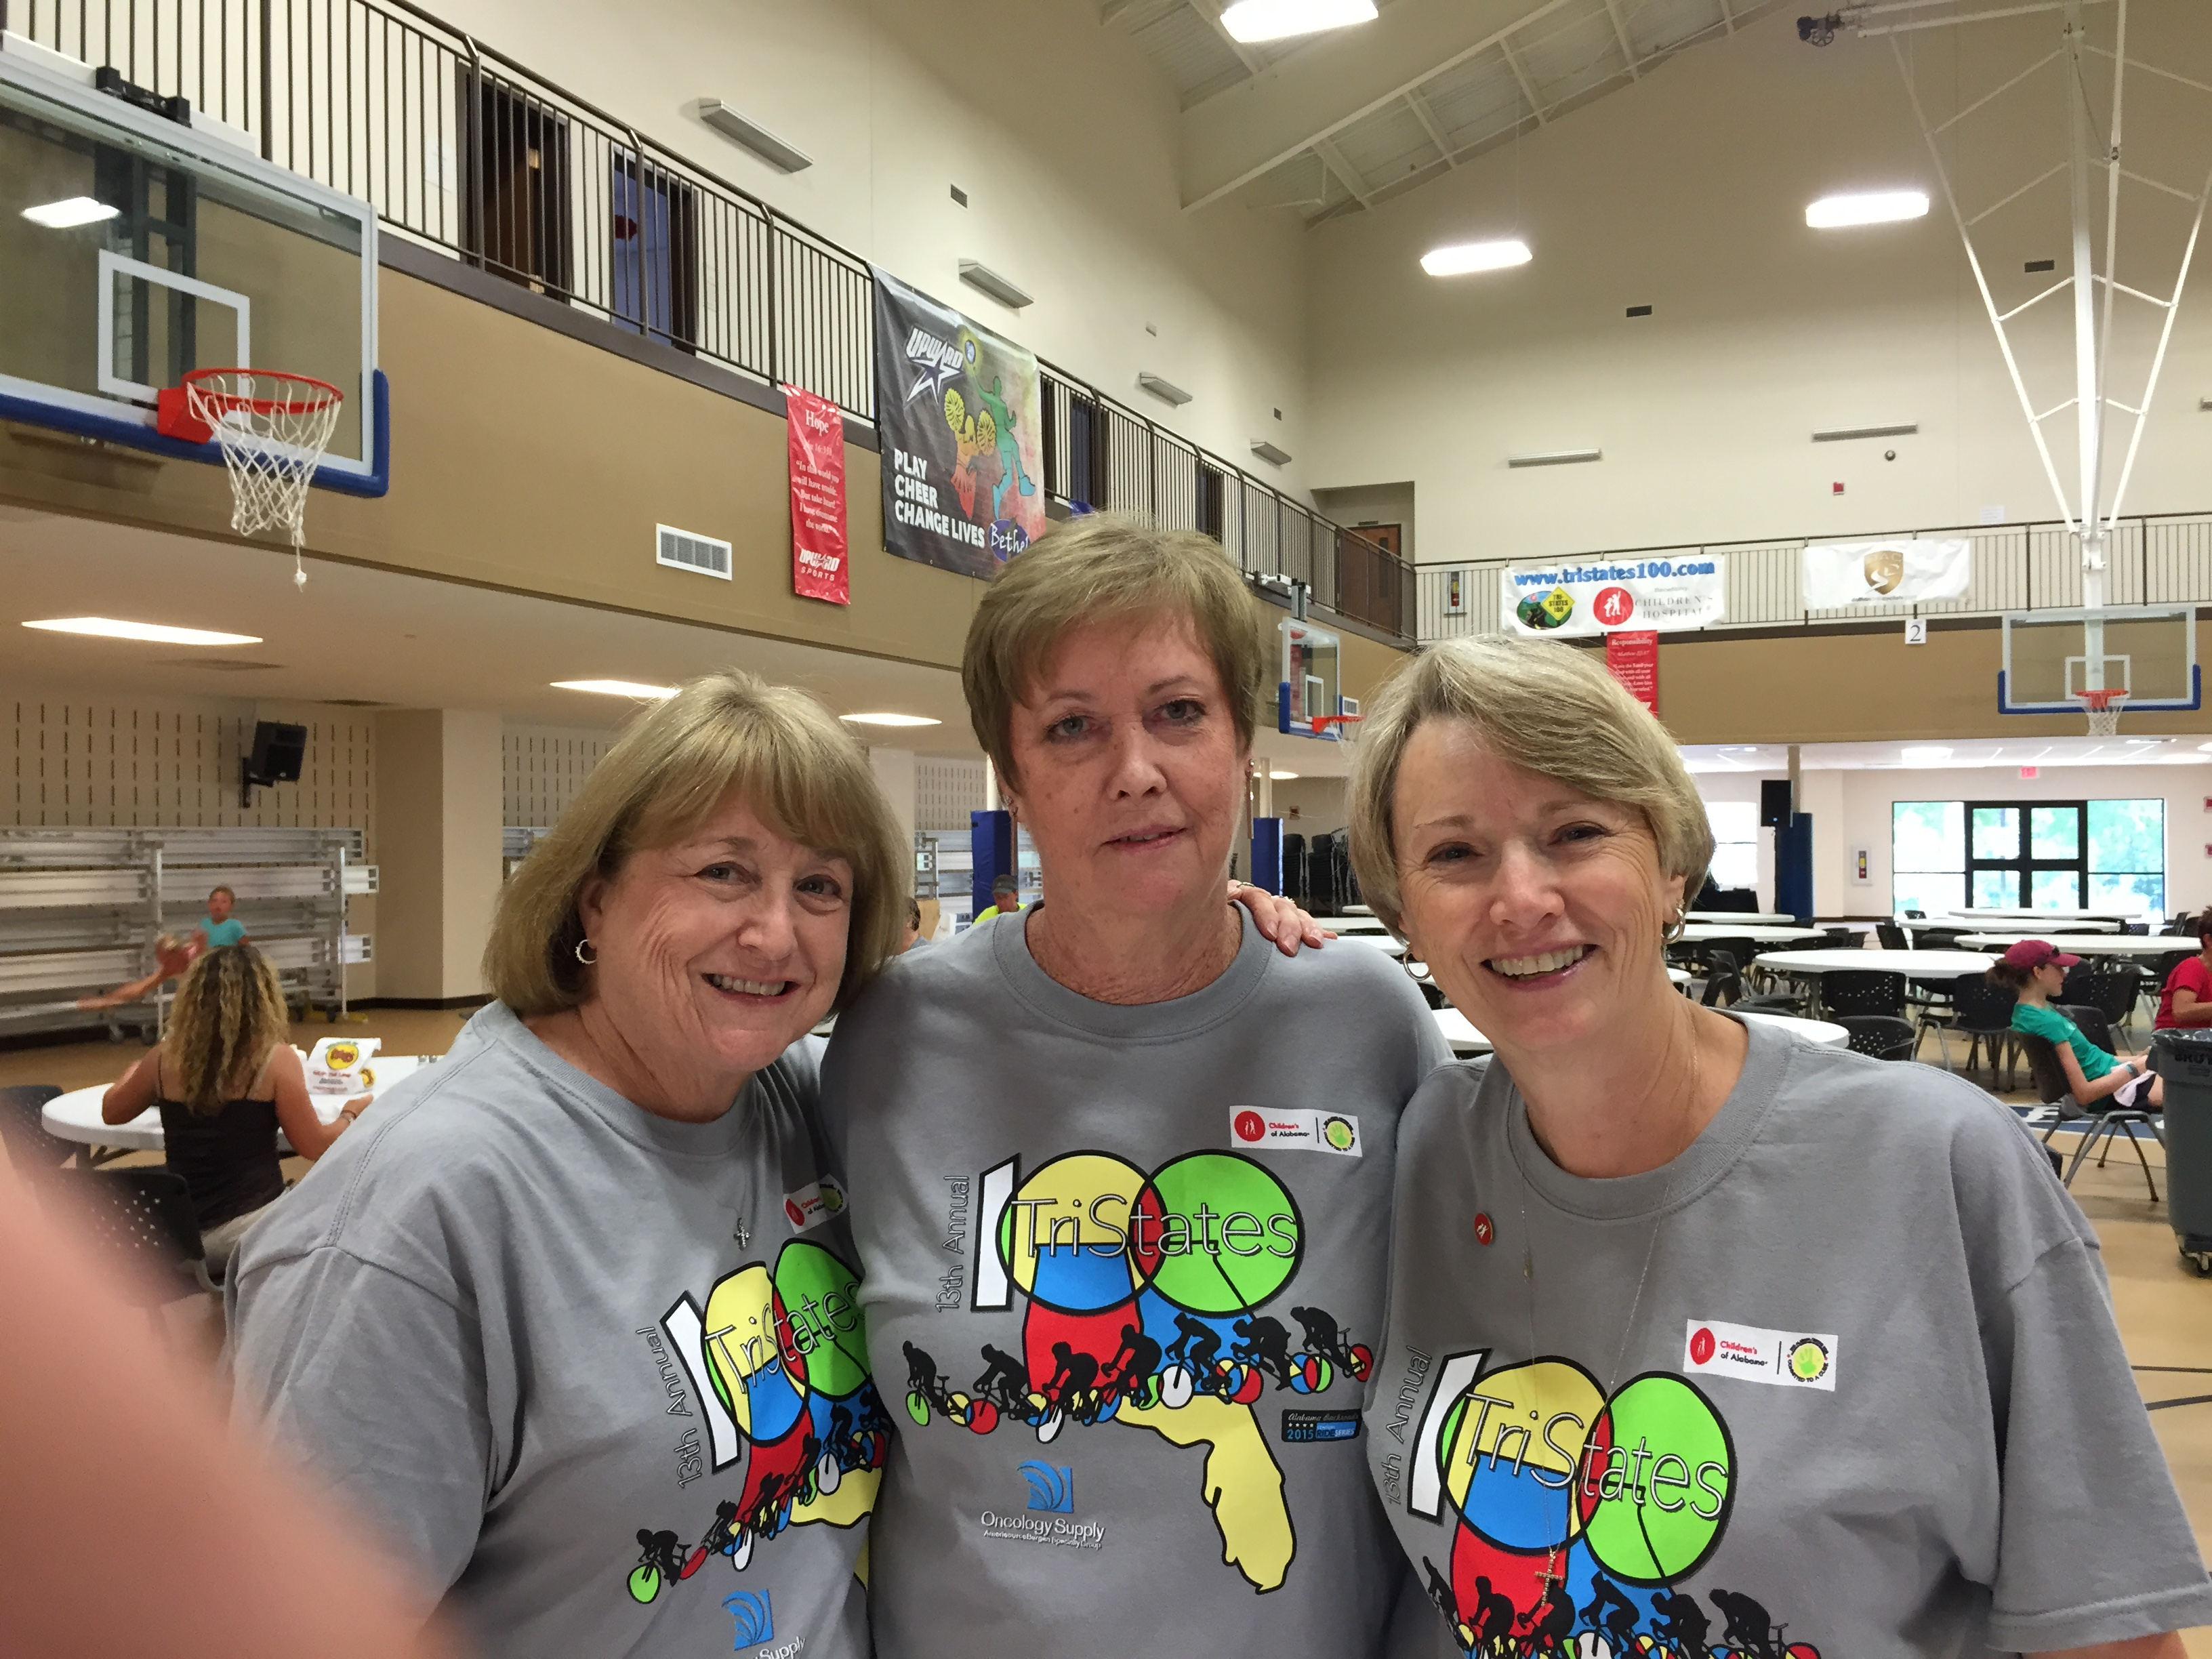 Tristates 100 2015-Friends, Family, and Fun